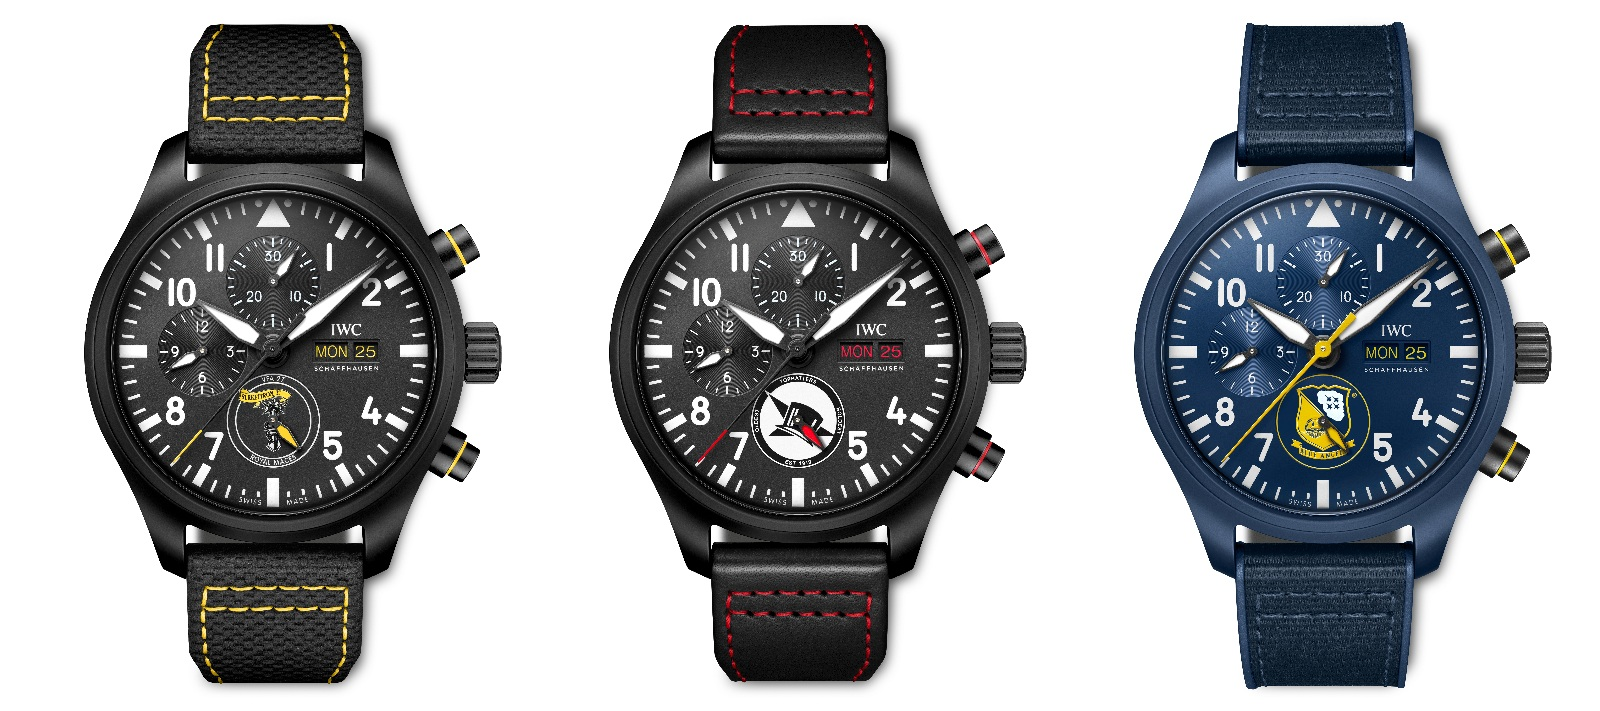 """The Pilot's Watches Chronograph Editions """"Royal Maces"""", """"Tophatters"""", and """"Blue Angels"""" all feature the respective squadron patch on the dial and eye-catching details in the corresponding unit's colour scheme"""